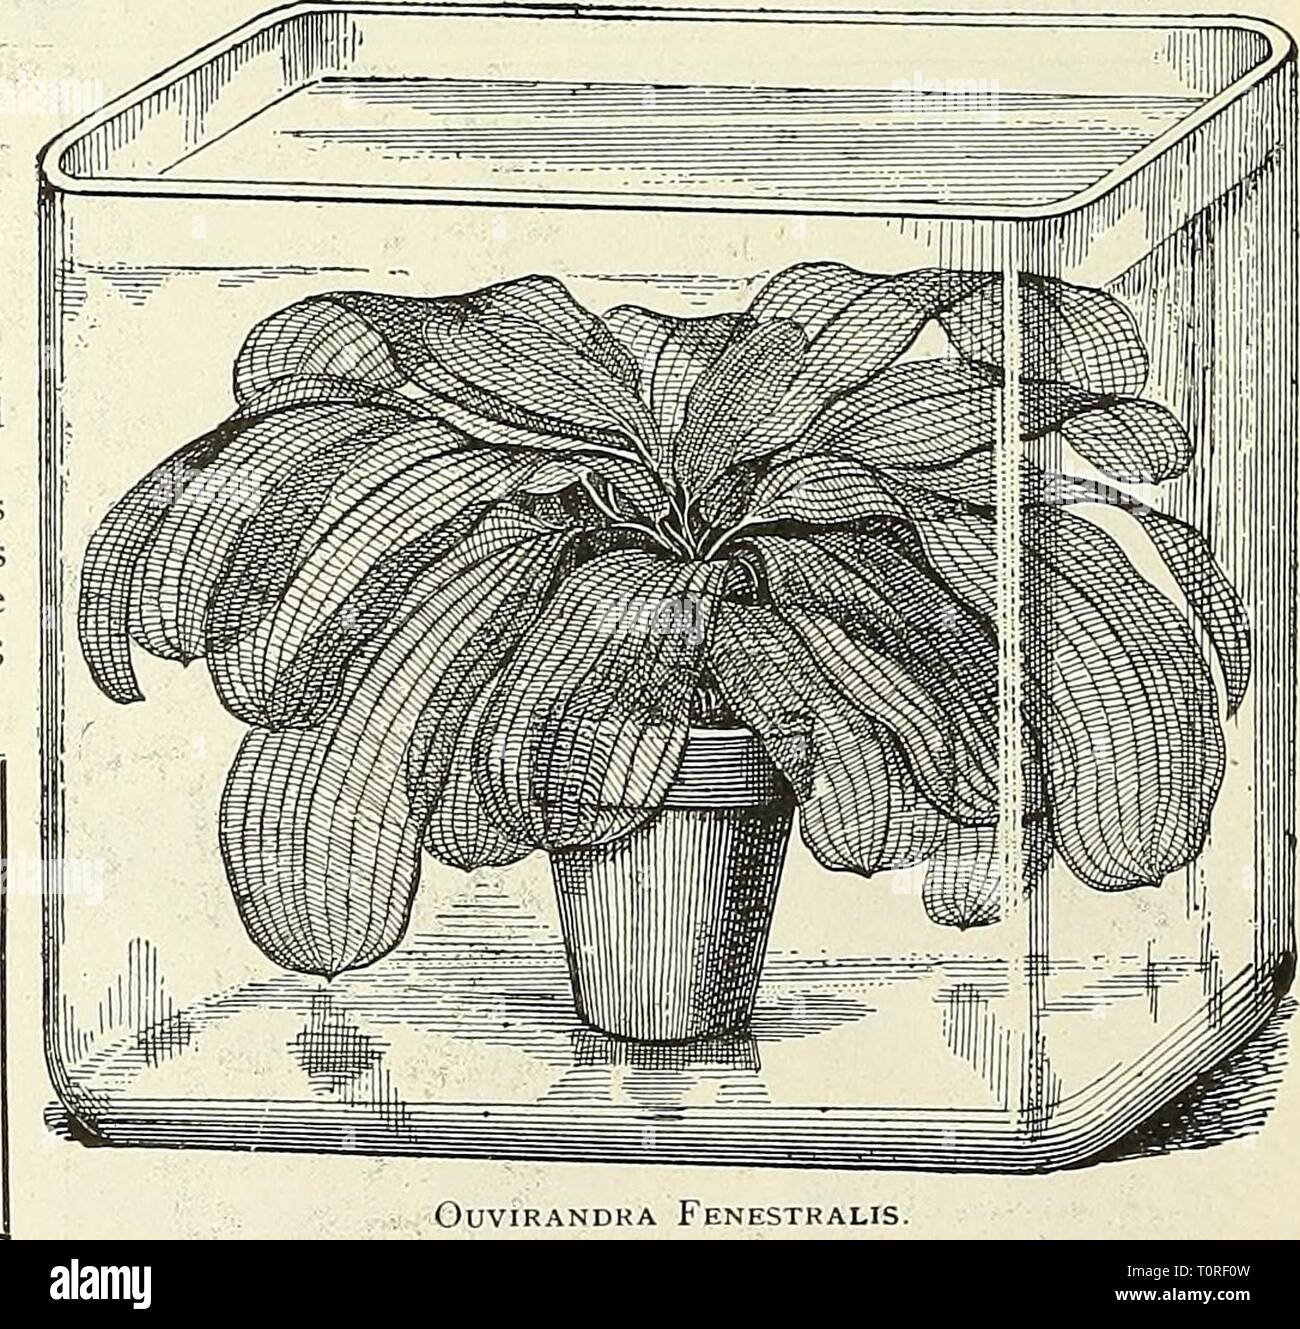 Dreer's garden book  1904 Dreer's garden book : 1904  dreersgardenbook1904henr Year: 1904  CvpERus Alternifolius. WATER LILIES AND AQUATICS AT THE Louisiana Purchase Exposition, St. Louis, 1904. We have been requested liy the managers of the Great St. Louis Exposition to make a display of the above,.and two large ponds have been set aside for our use. Those who visit St. Louis this year should not fail to see our exhibit, located between the Agricultural and Horticultural Buildings.    Ouvirandra Fenestralis, THE WATER GARDEN. A splendid book on Aquatics. Price, $2.00, postpaid. - Stock Image